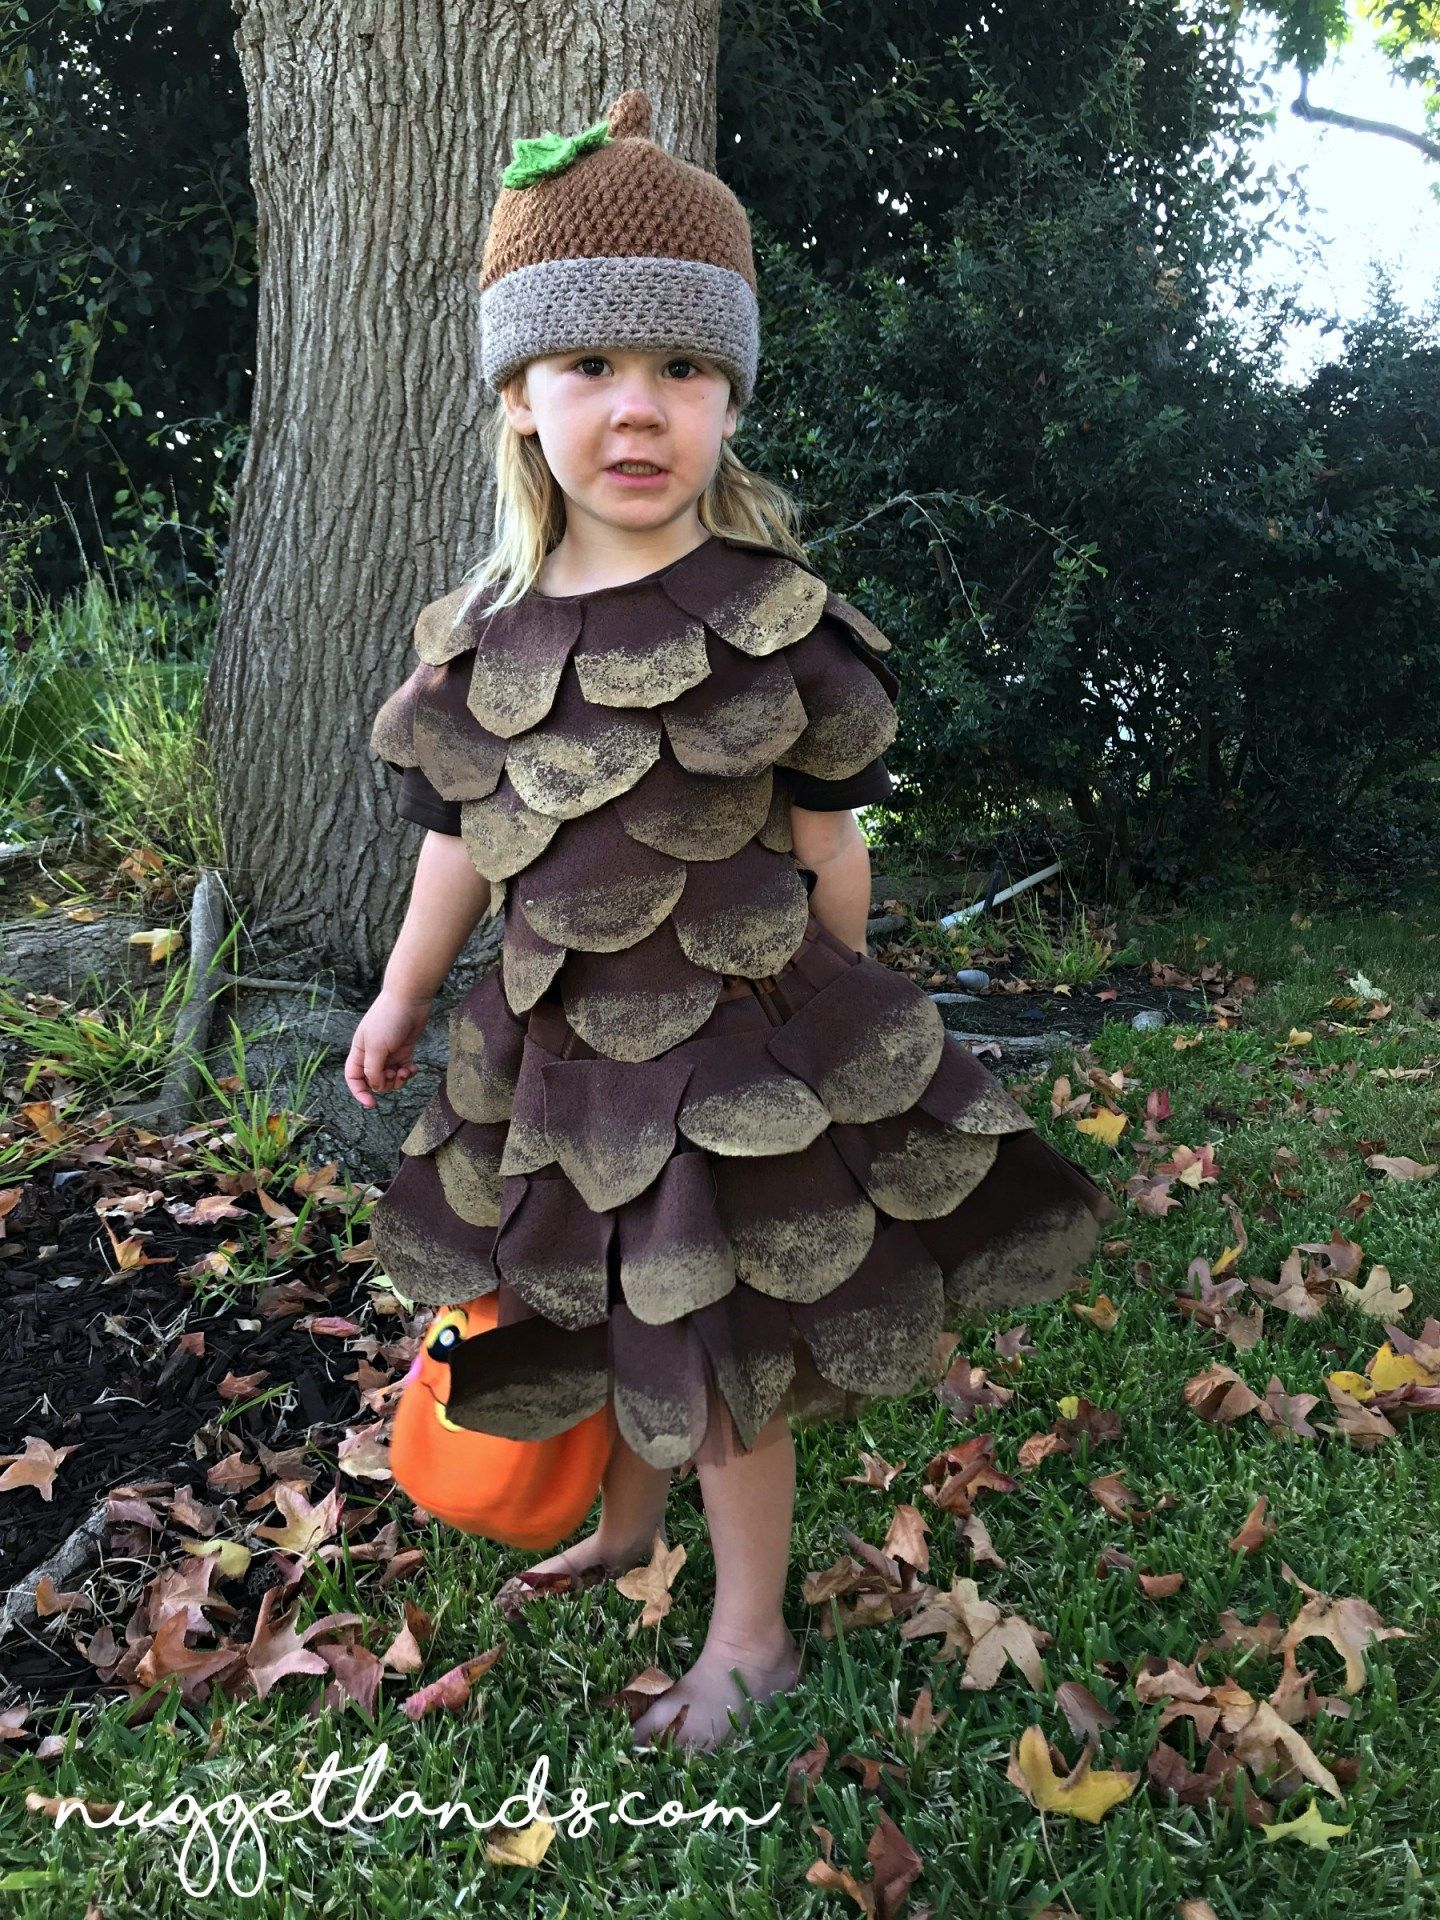 Pine Cone Halloween Costume DIY tutorial and pictures